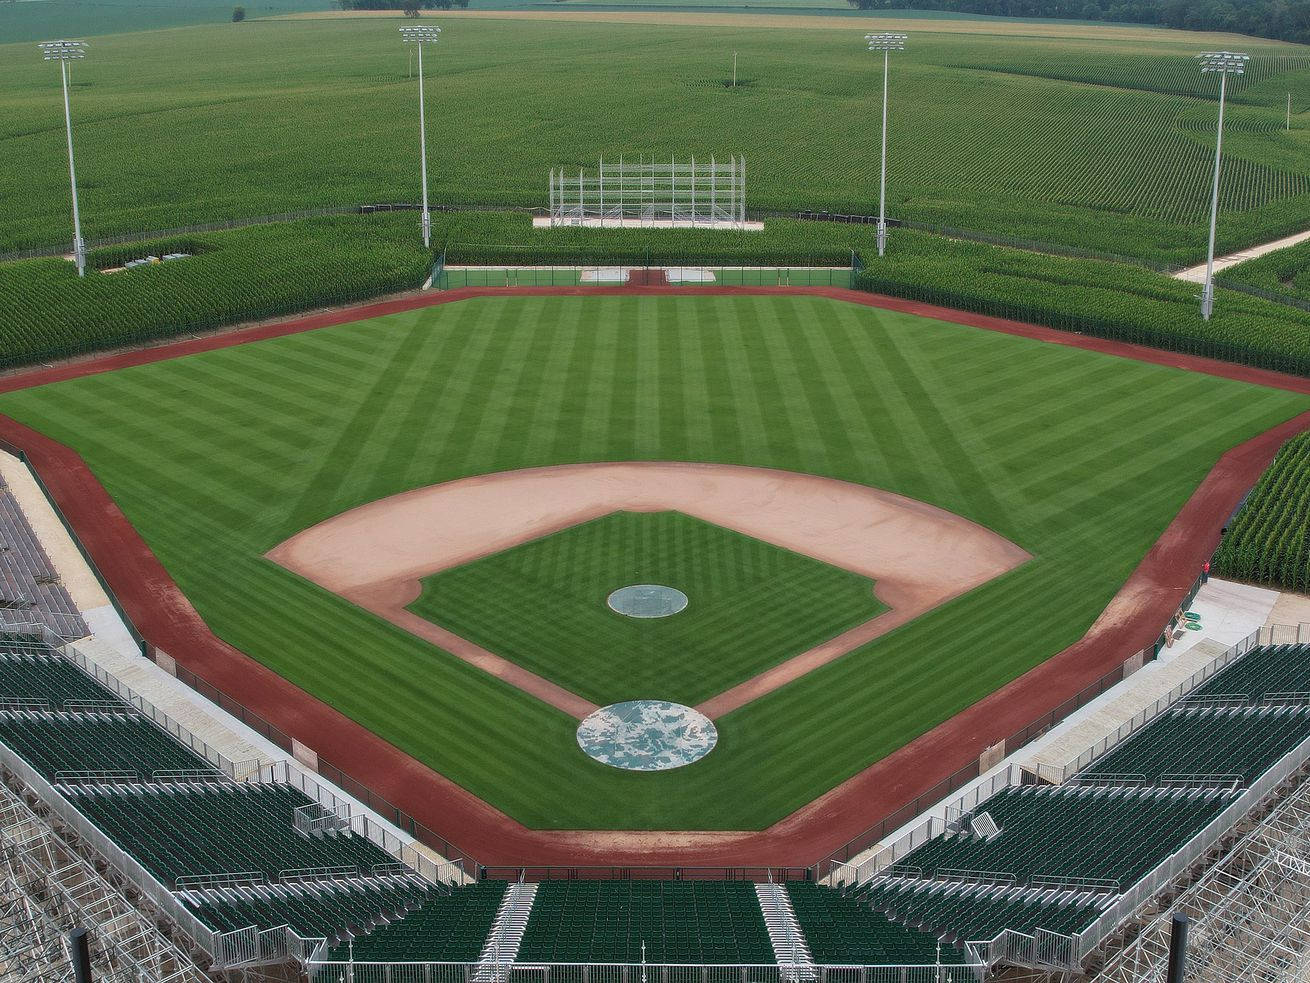 The White Sox and Yankees will play the first major-league regular-season game in Iowa on Aug. 12.